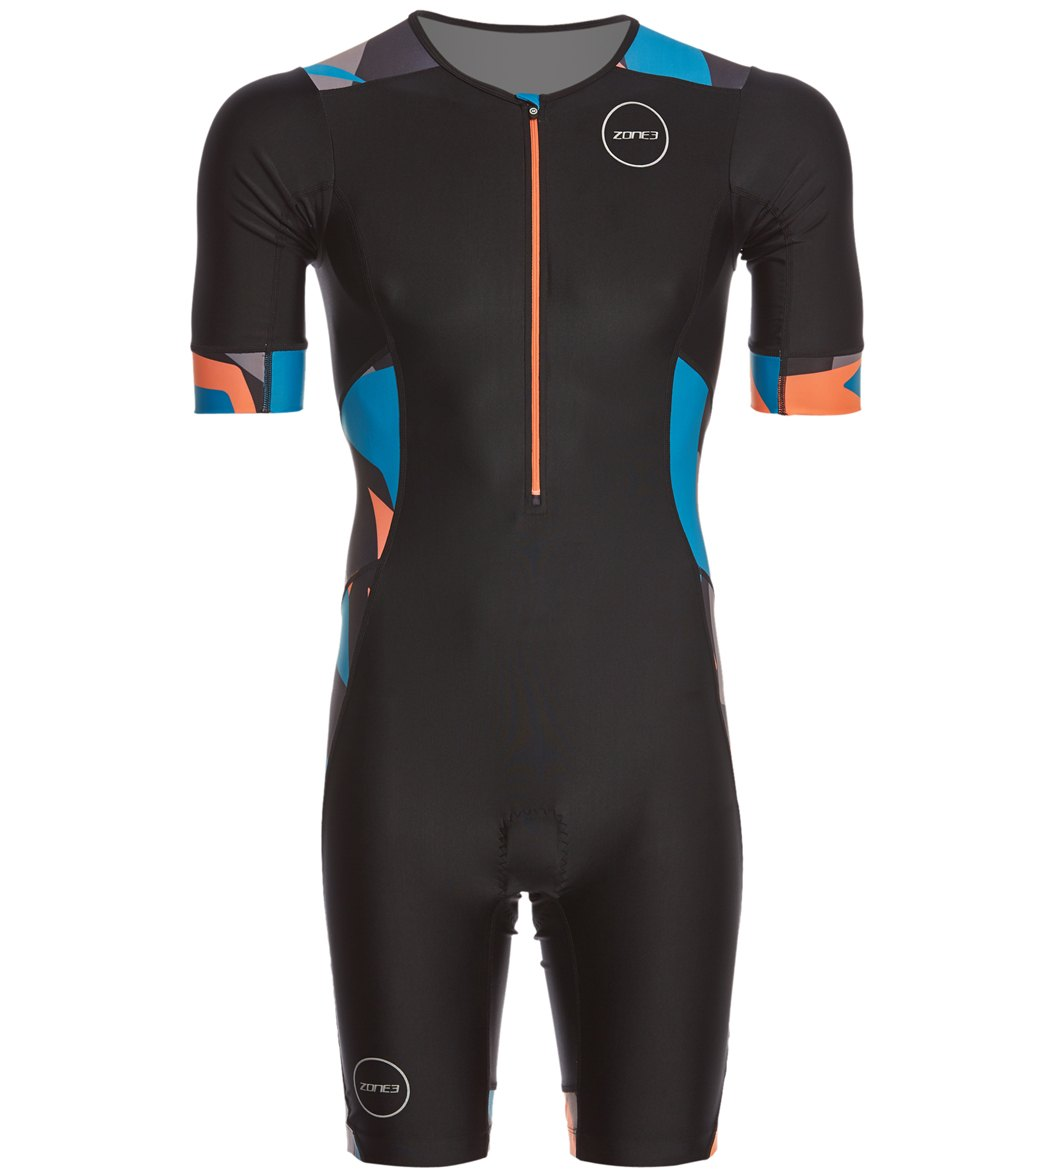 8062309ad17 Zone 3 Men's Activate Plus Sleeved Trisuit at SwimOutlet.com - Free Shipping